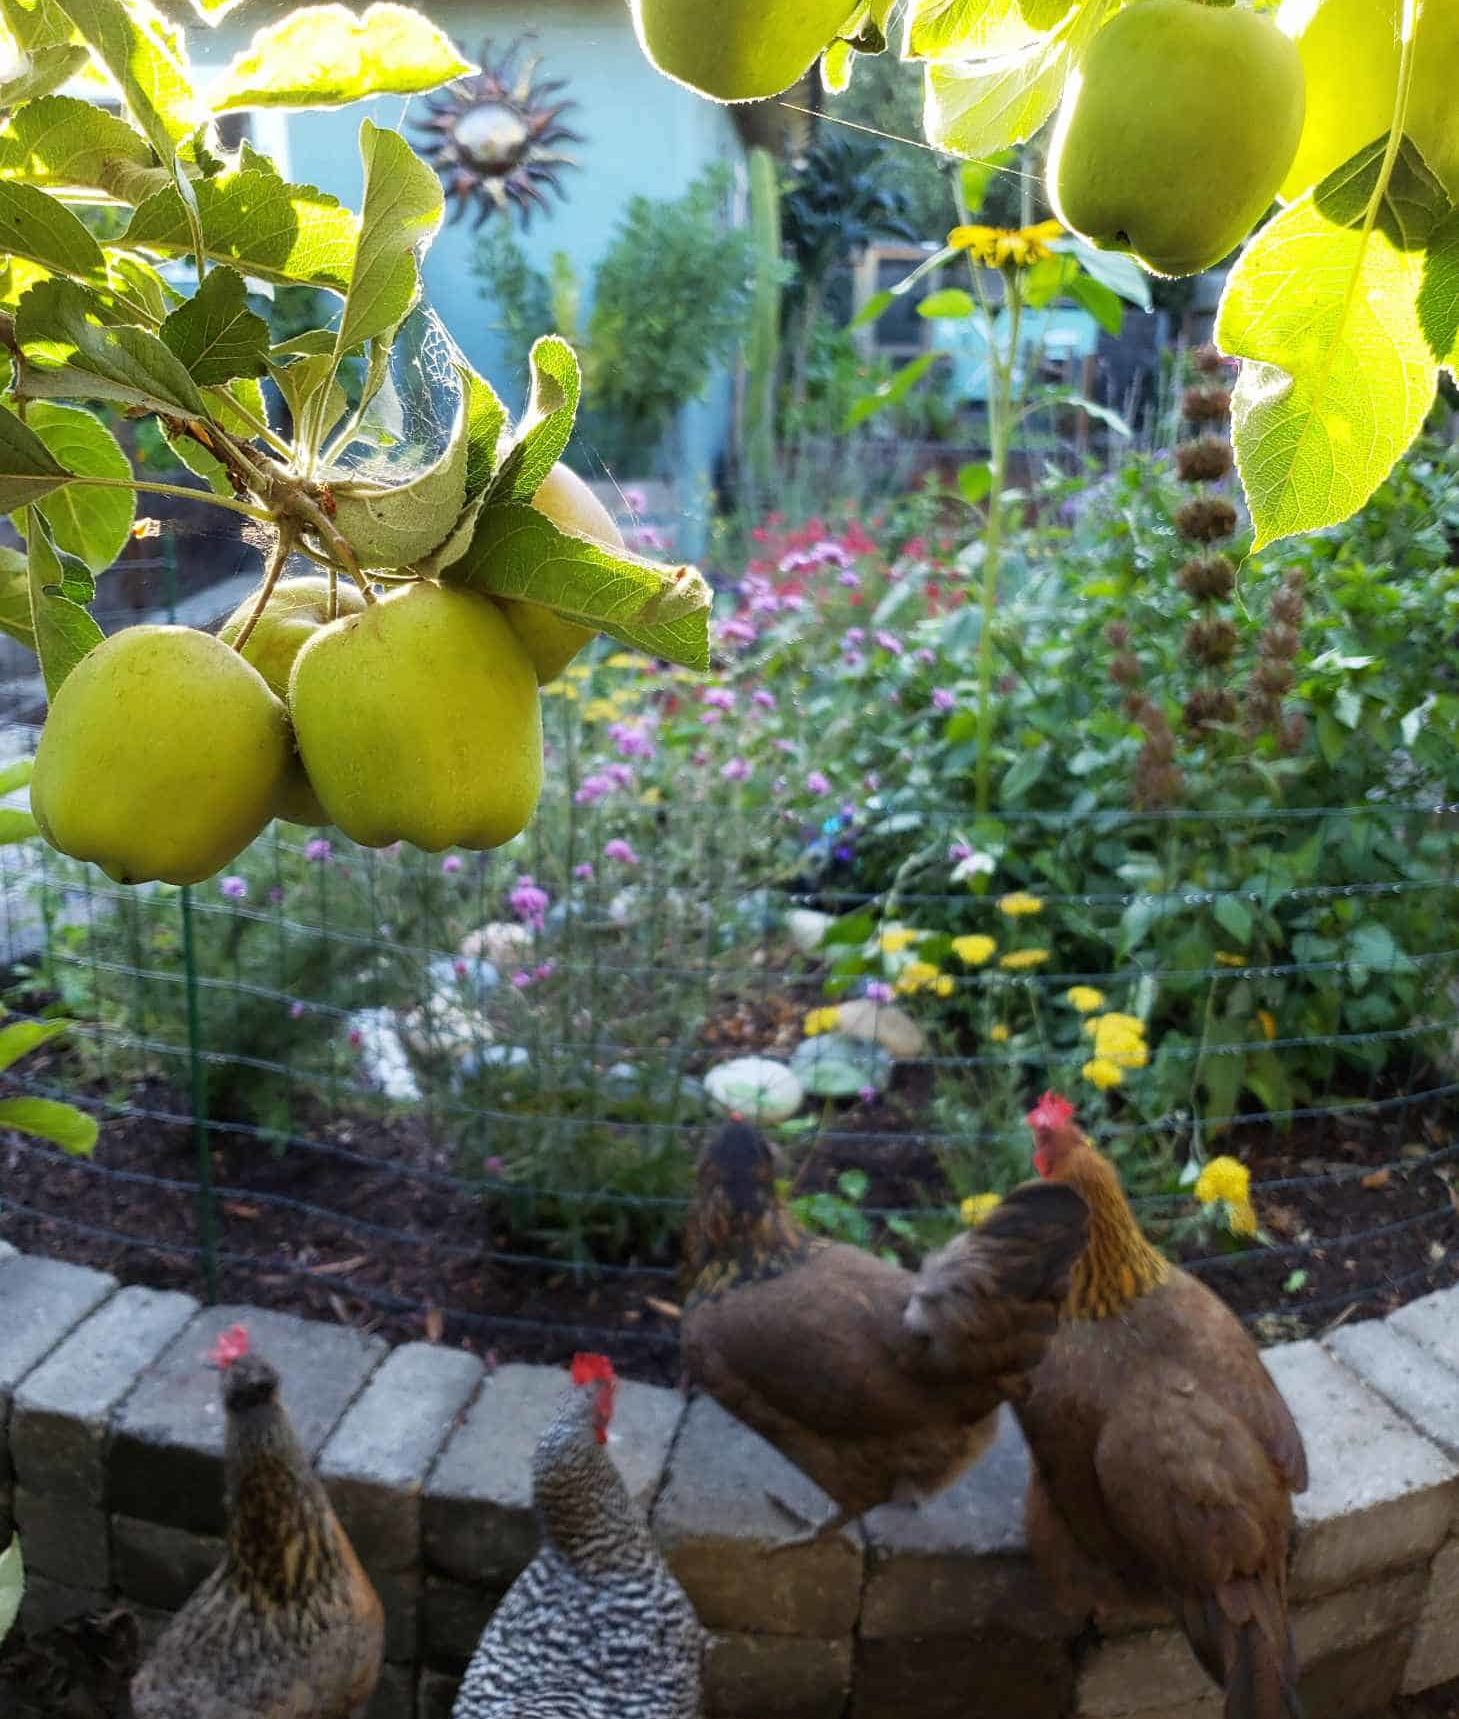 A stone raised bed full of flowering perennials, planted to attract pollinators like bees, butterflies, and hummingbirds. An apple tree dangles in front of the shot, and backyard chickens are in the foreground, enjoying the garden.